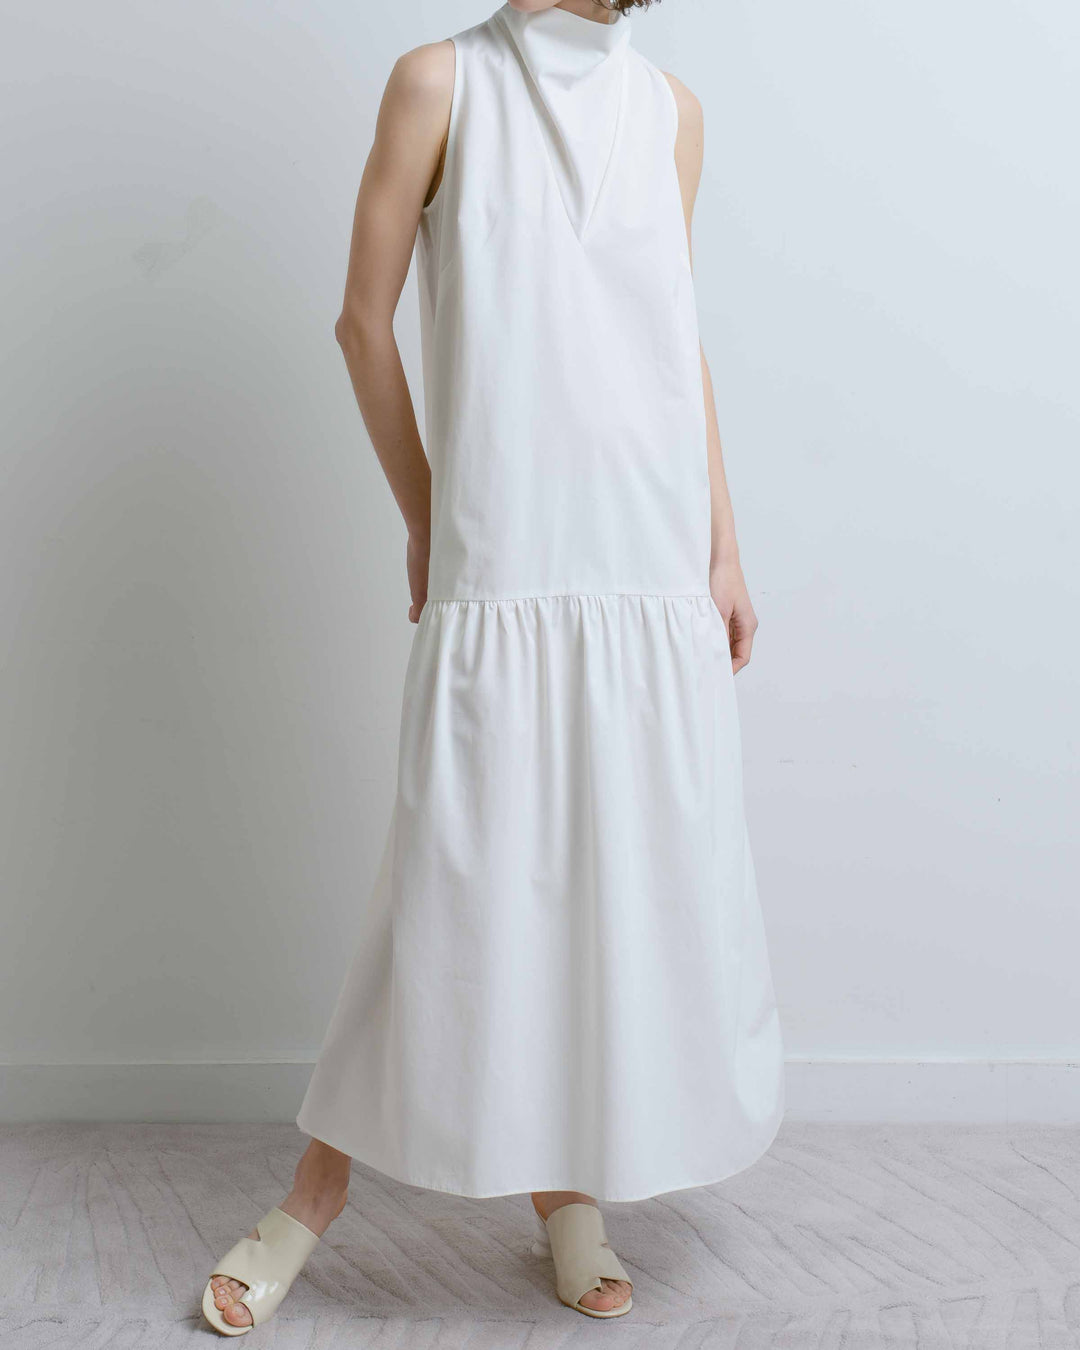 White Cowl Neck Dress